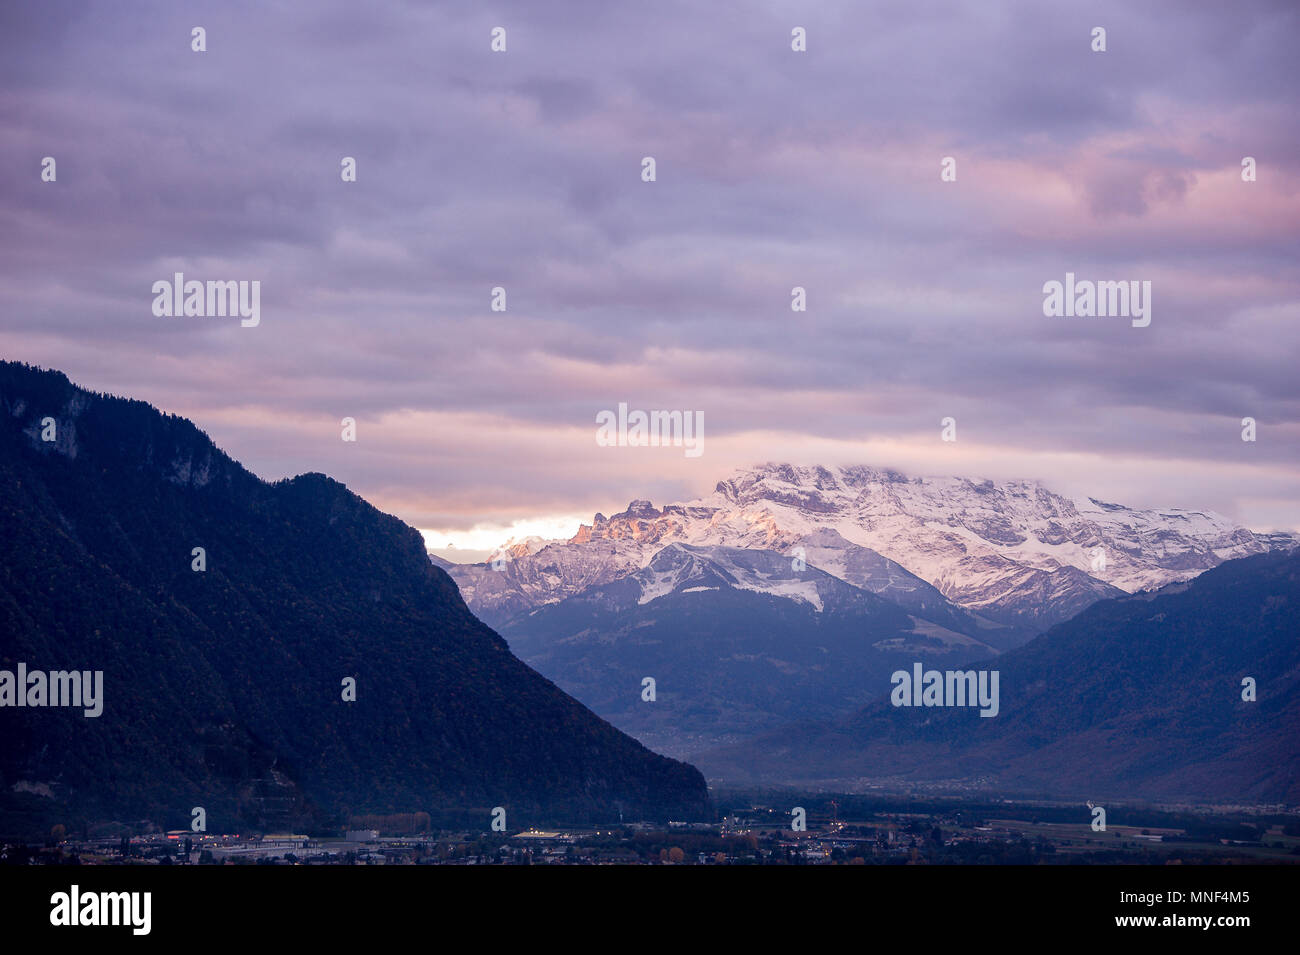 Panoramic view to the Dents du Midi (teeth of noon),  near Chablais, Switzerland. Dawn sunlight illuminates distant, snow covered peaks. Viewed from t - Stock Image